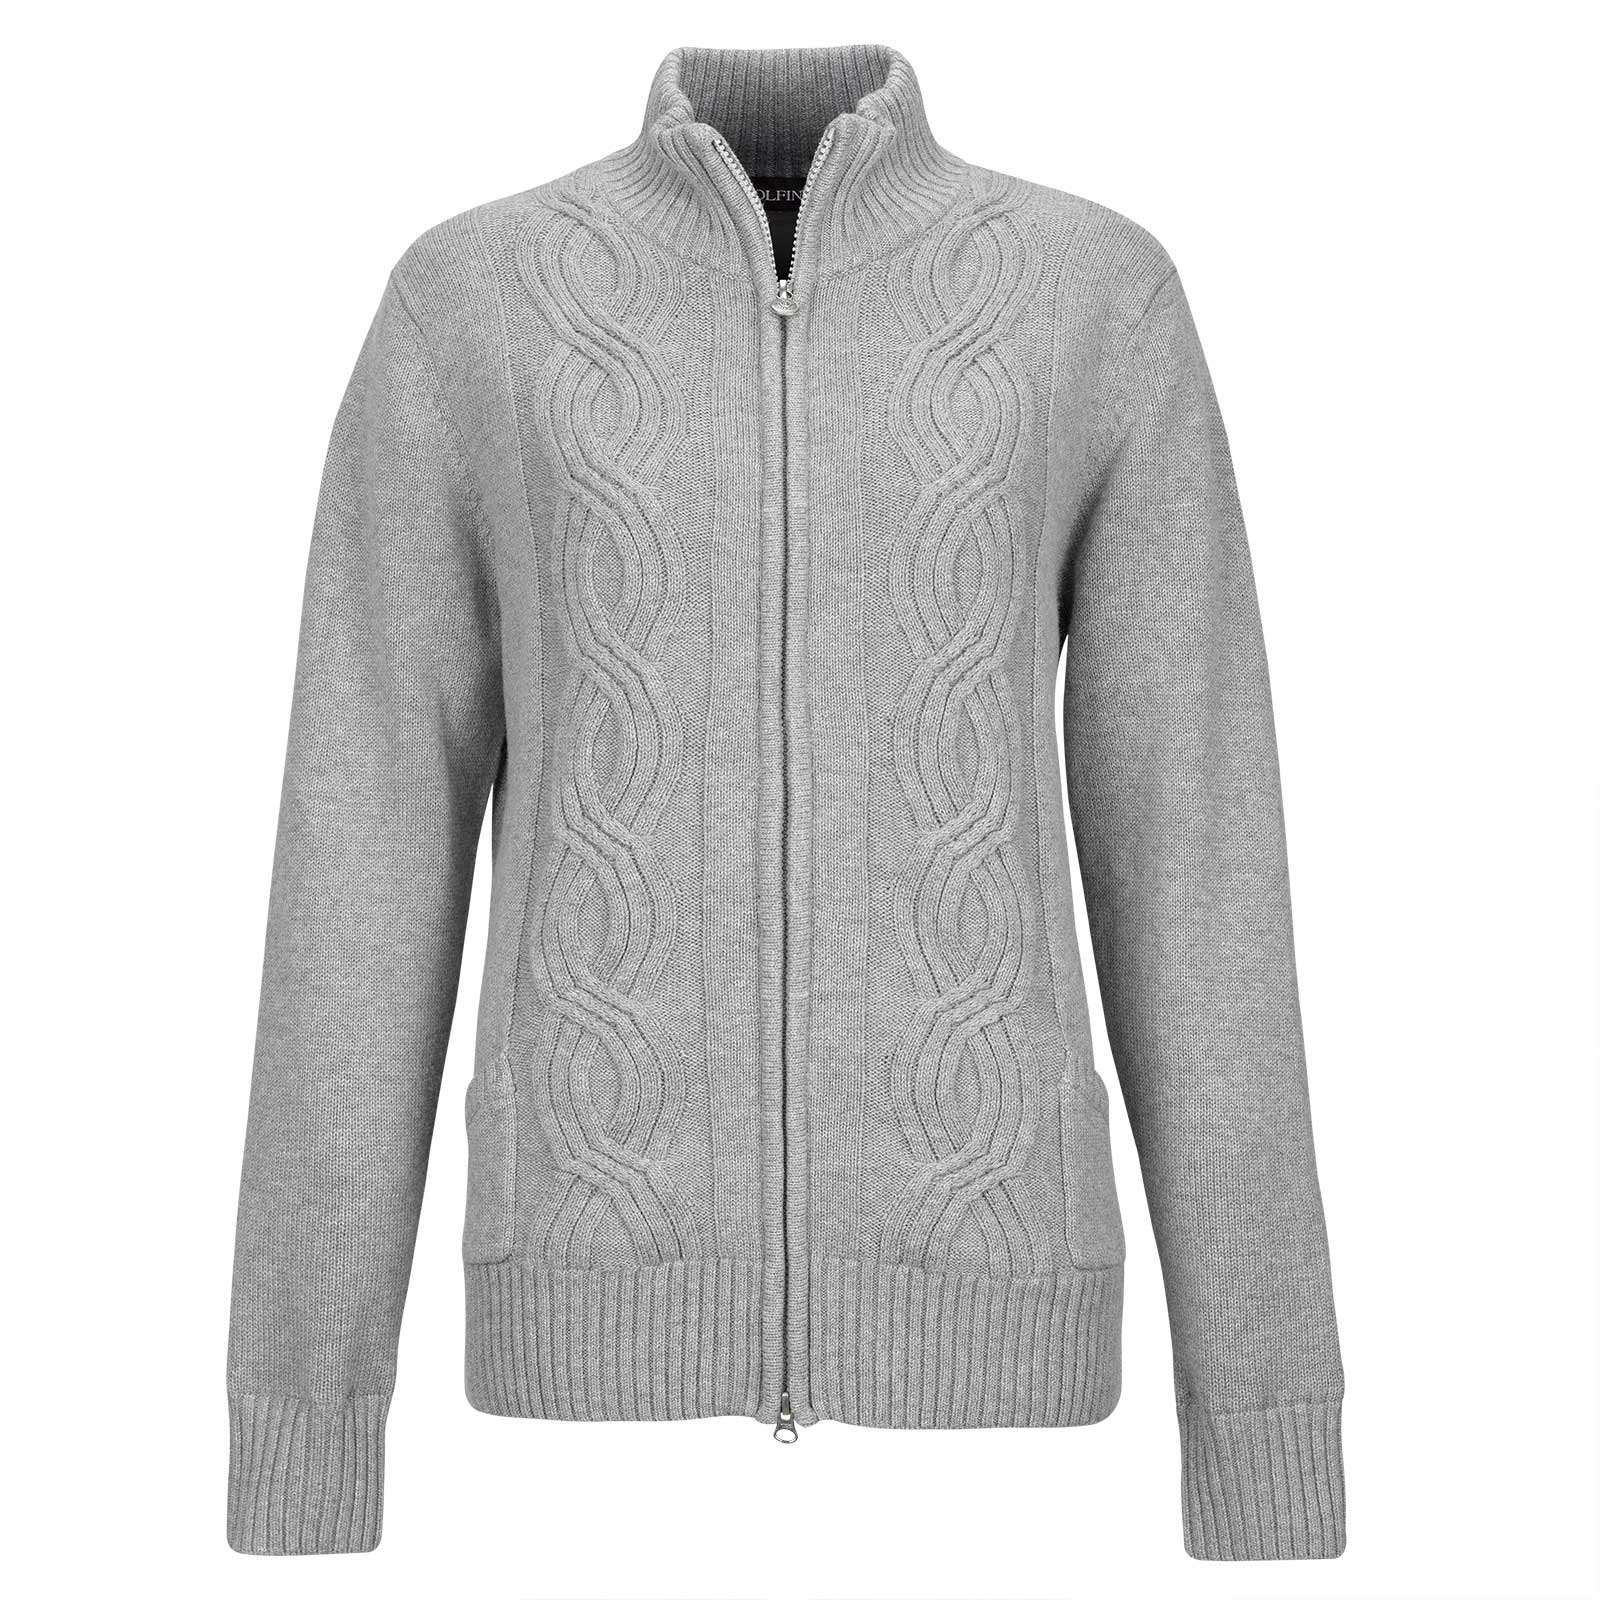 Ladies' windstopper cardigan from Merino blend